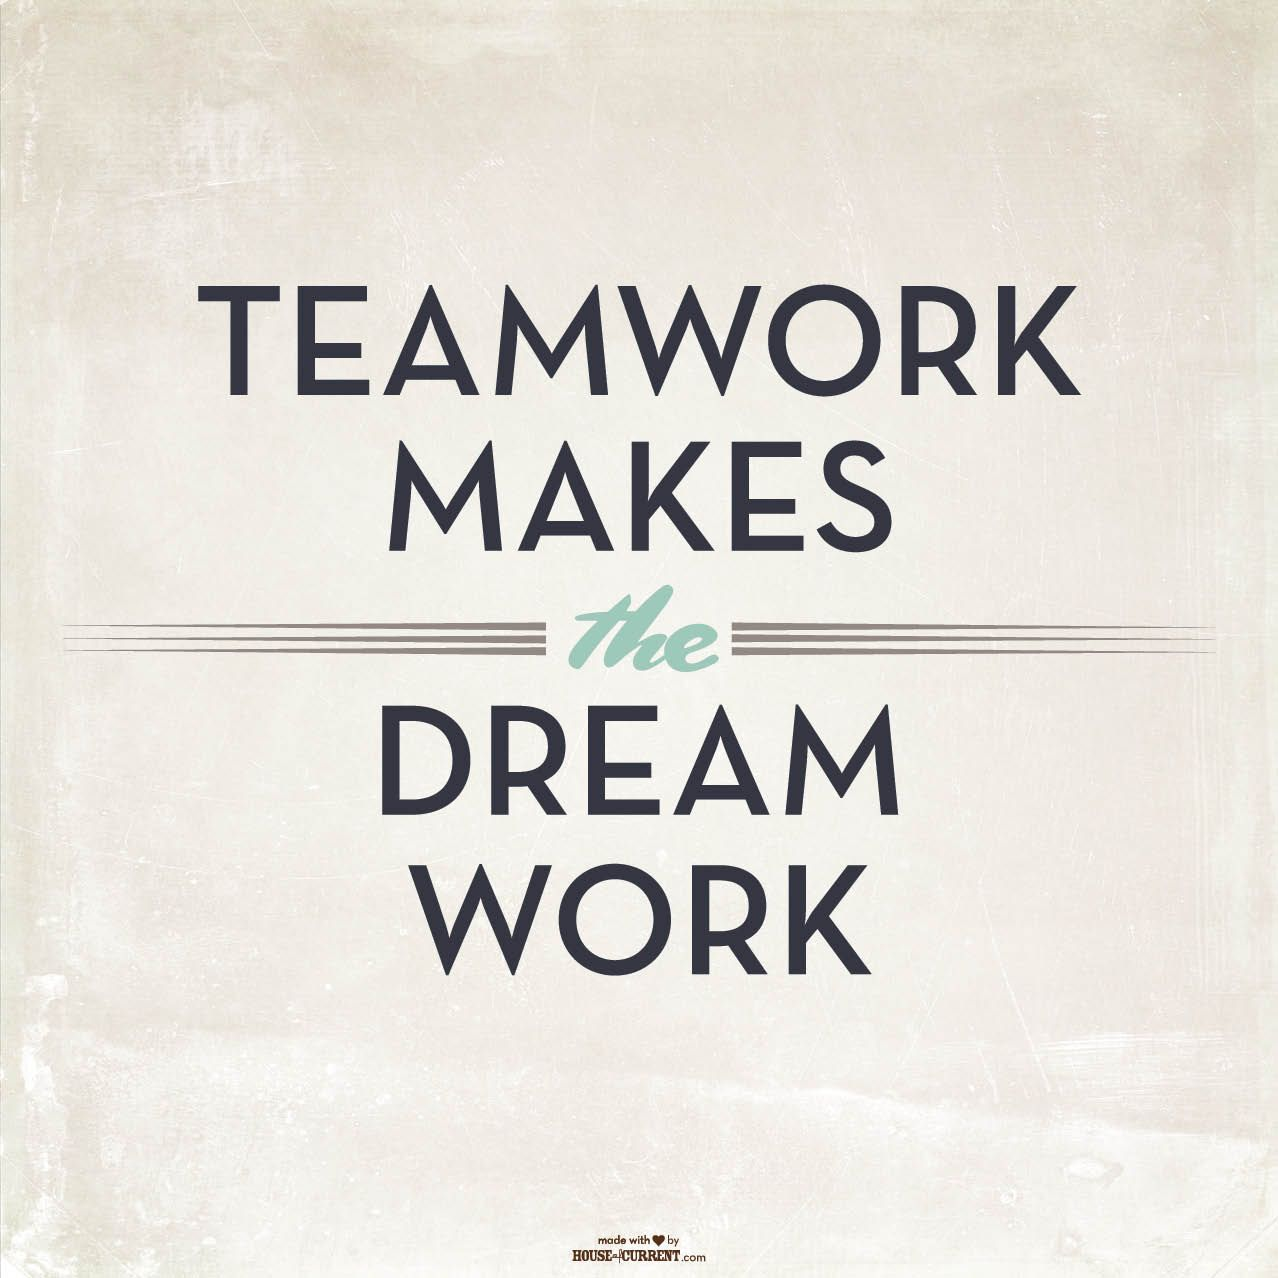 Motivational Quotes About Teamwork: #housequotes Teamwork Makes The Dream Work